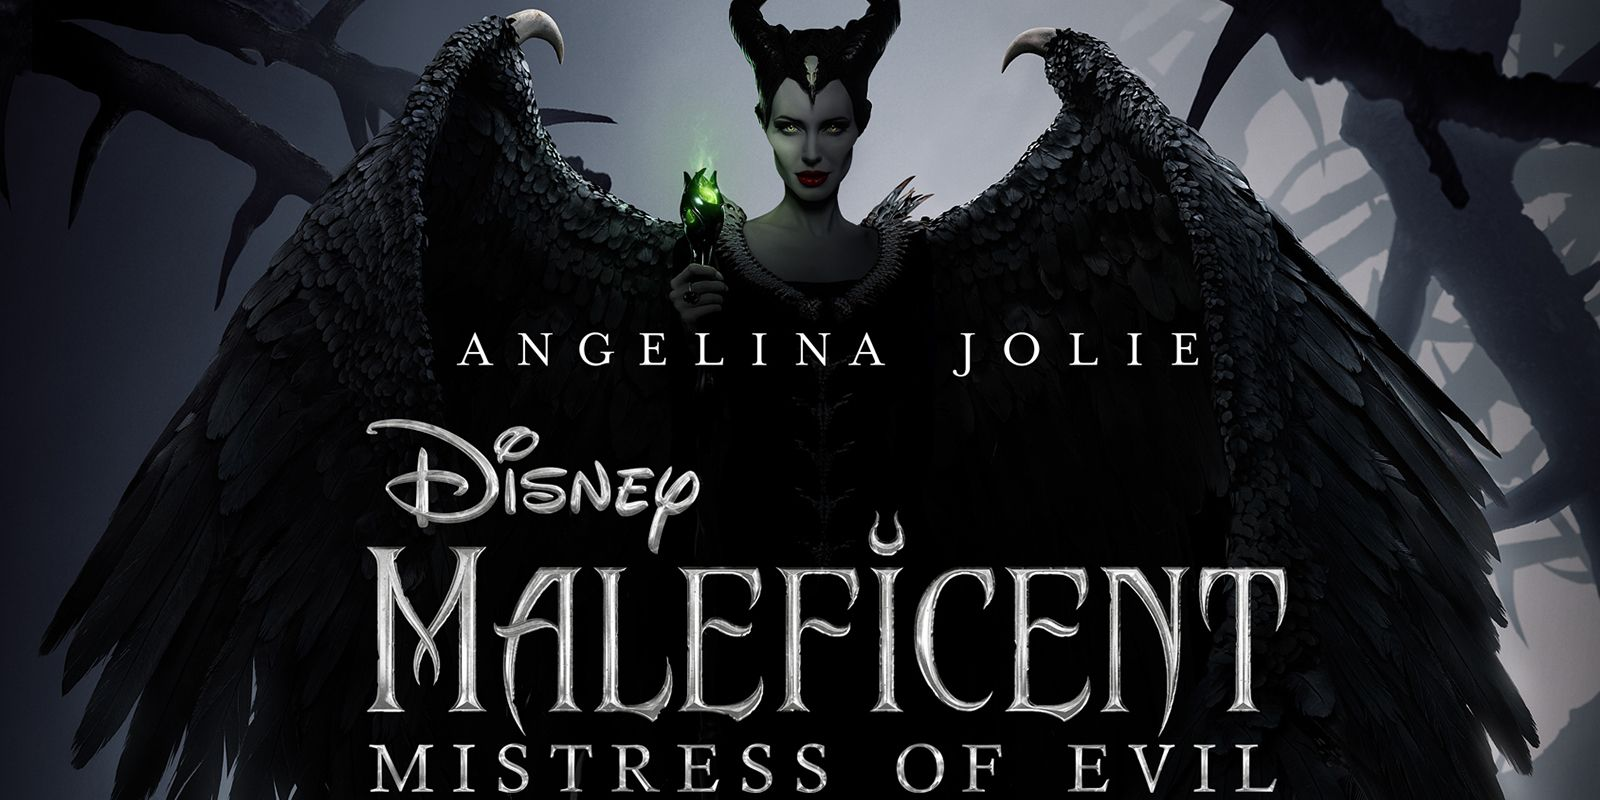 Maleficent: Mistress of Evil Poster Announces Start of Ticket Sales